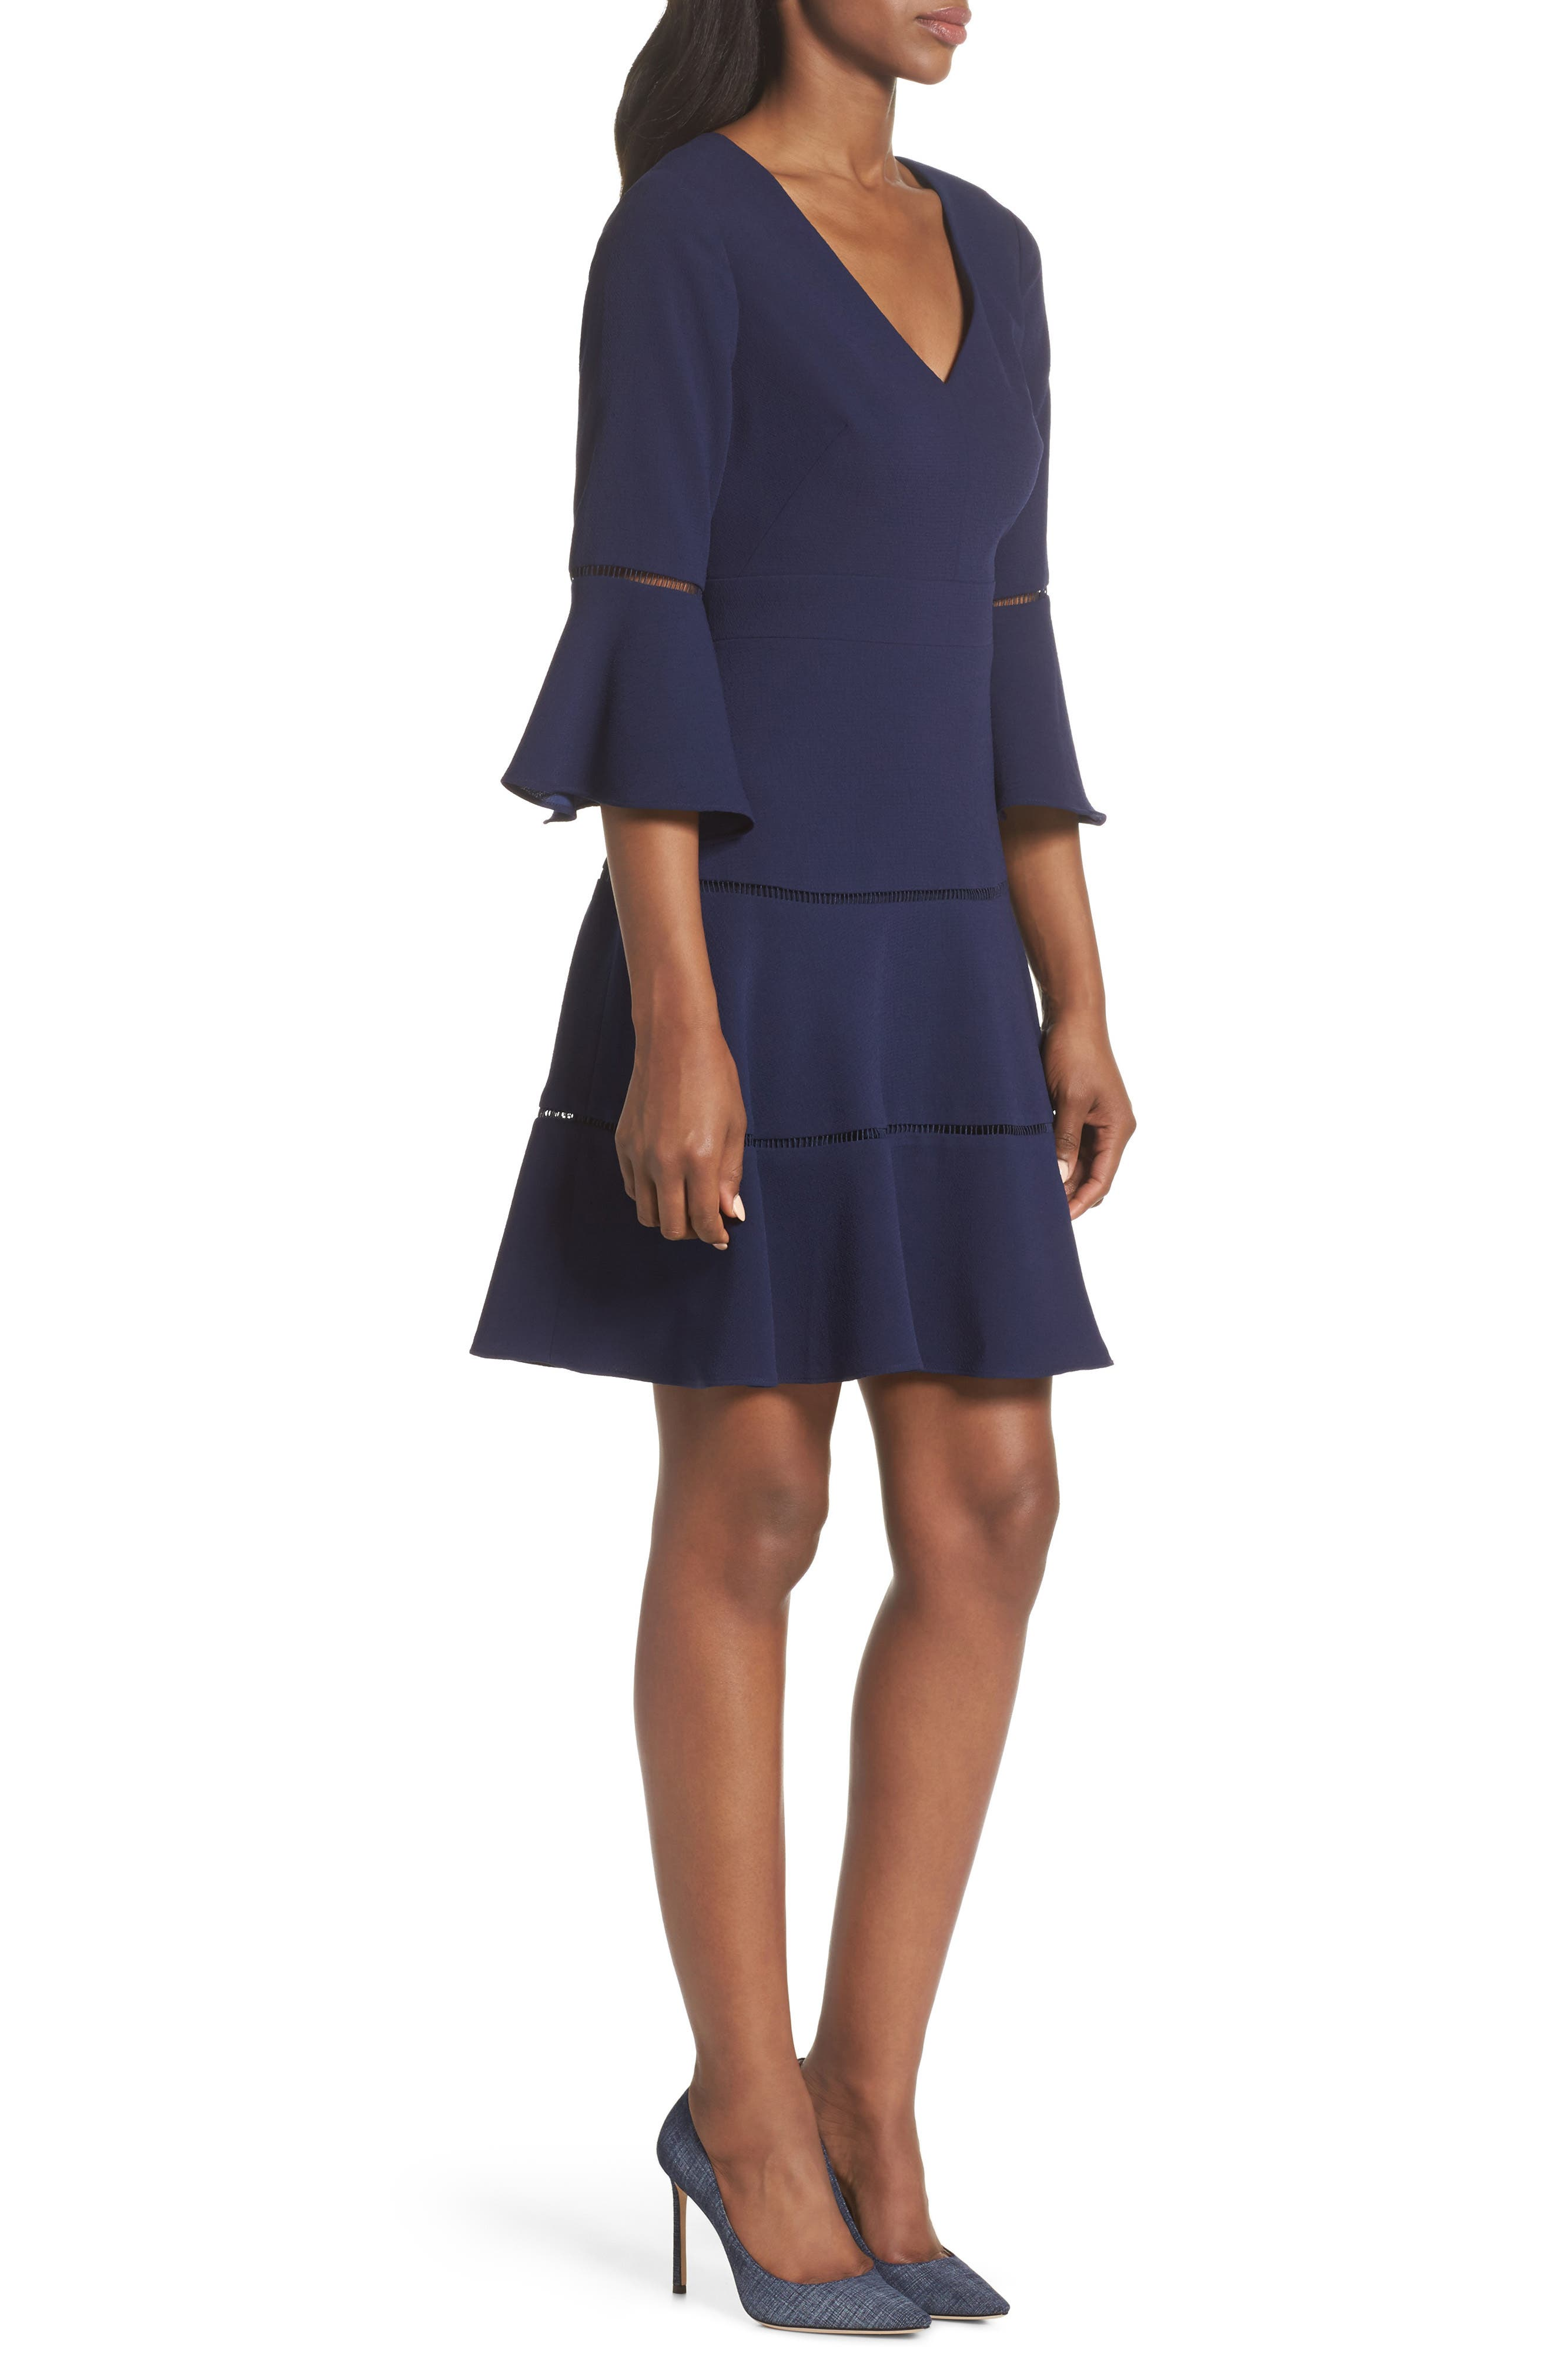 ELIZA J, Bell Sleeve Lace Inset Fit & Flare Dress, Alternate thumbnail 4, color, 410